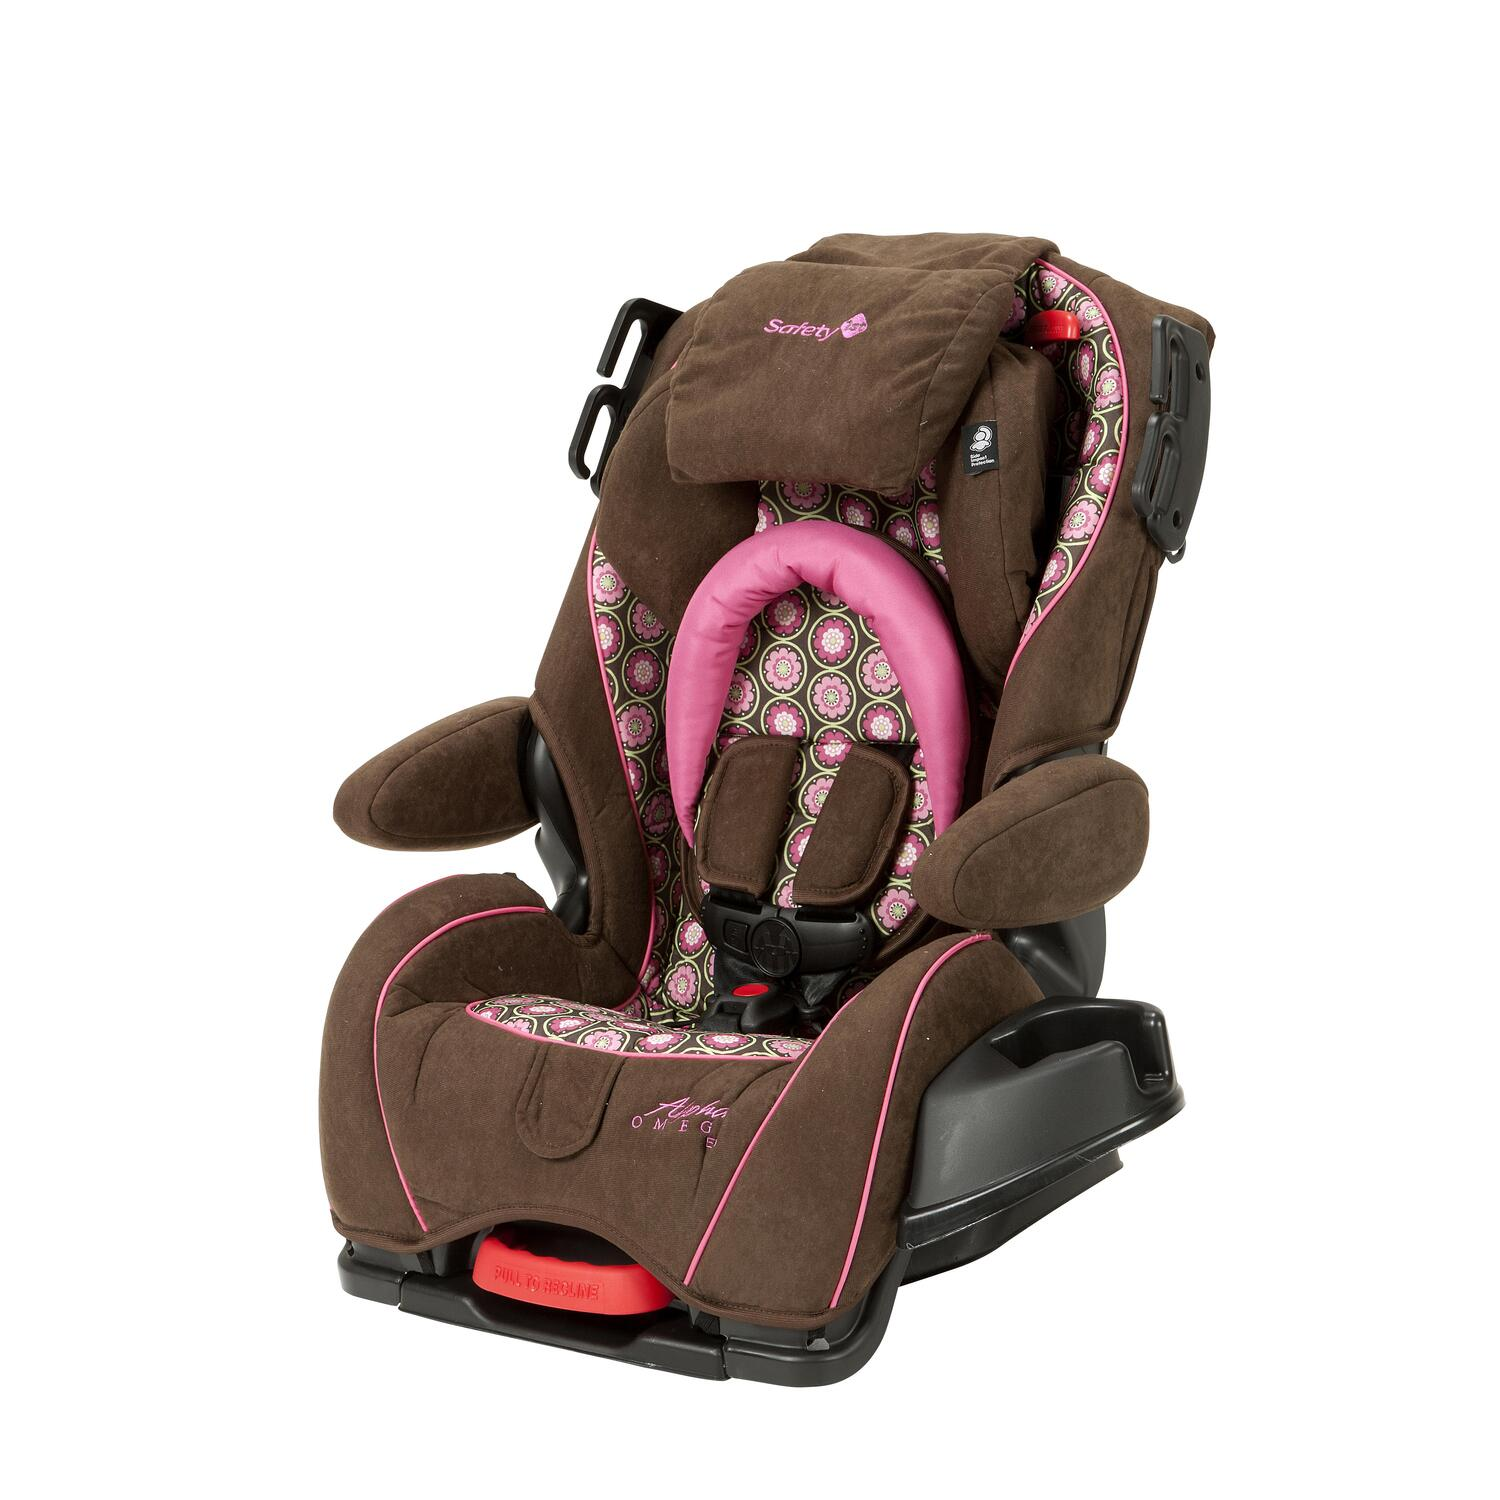 safety 1st safety 1st alpha omega elite convertible car seat by oj commerce cc106bnm. Black Bedroom Furniture Sets. Home Design Ideas